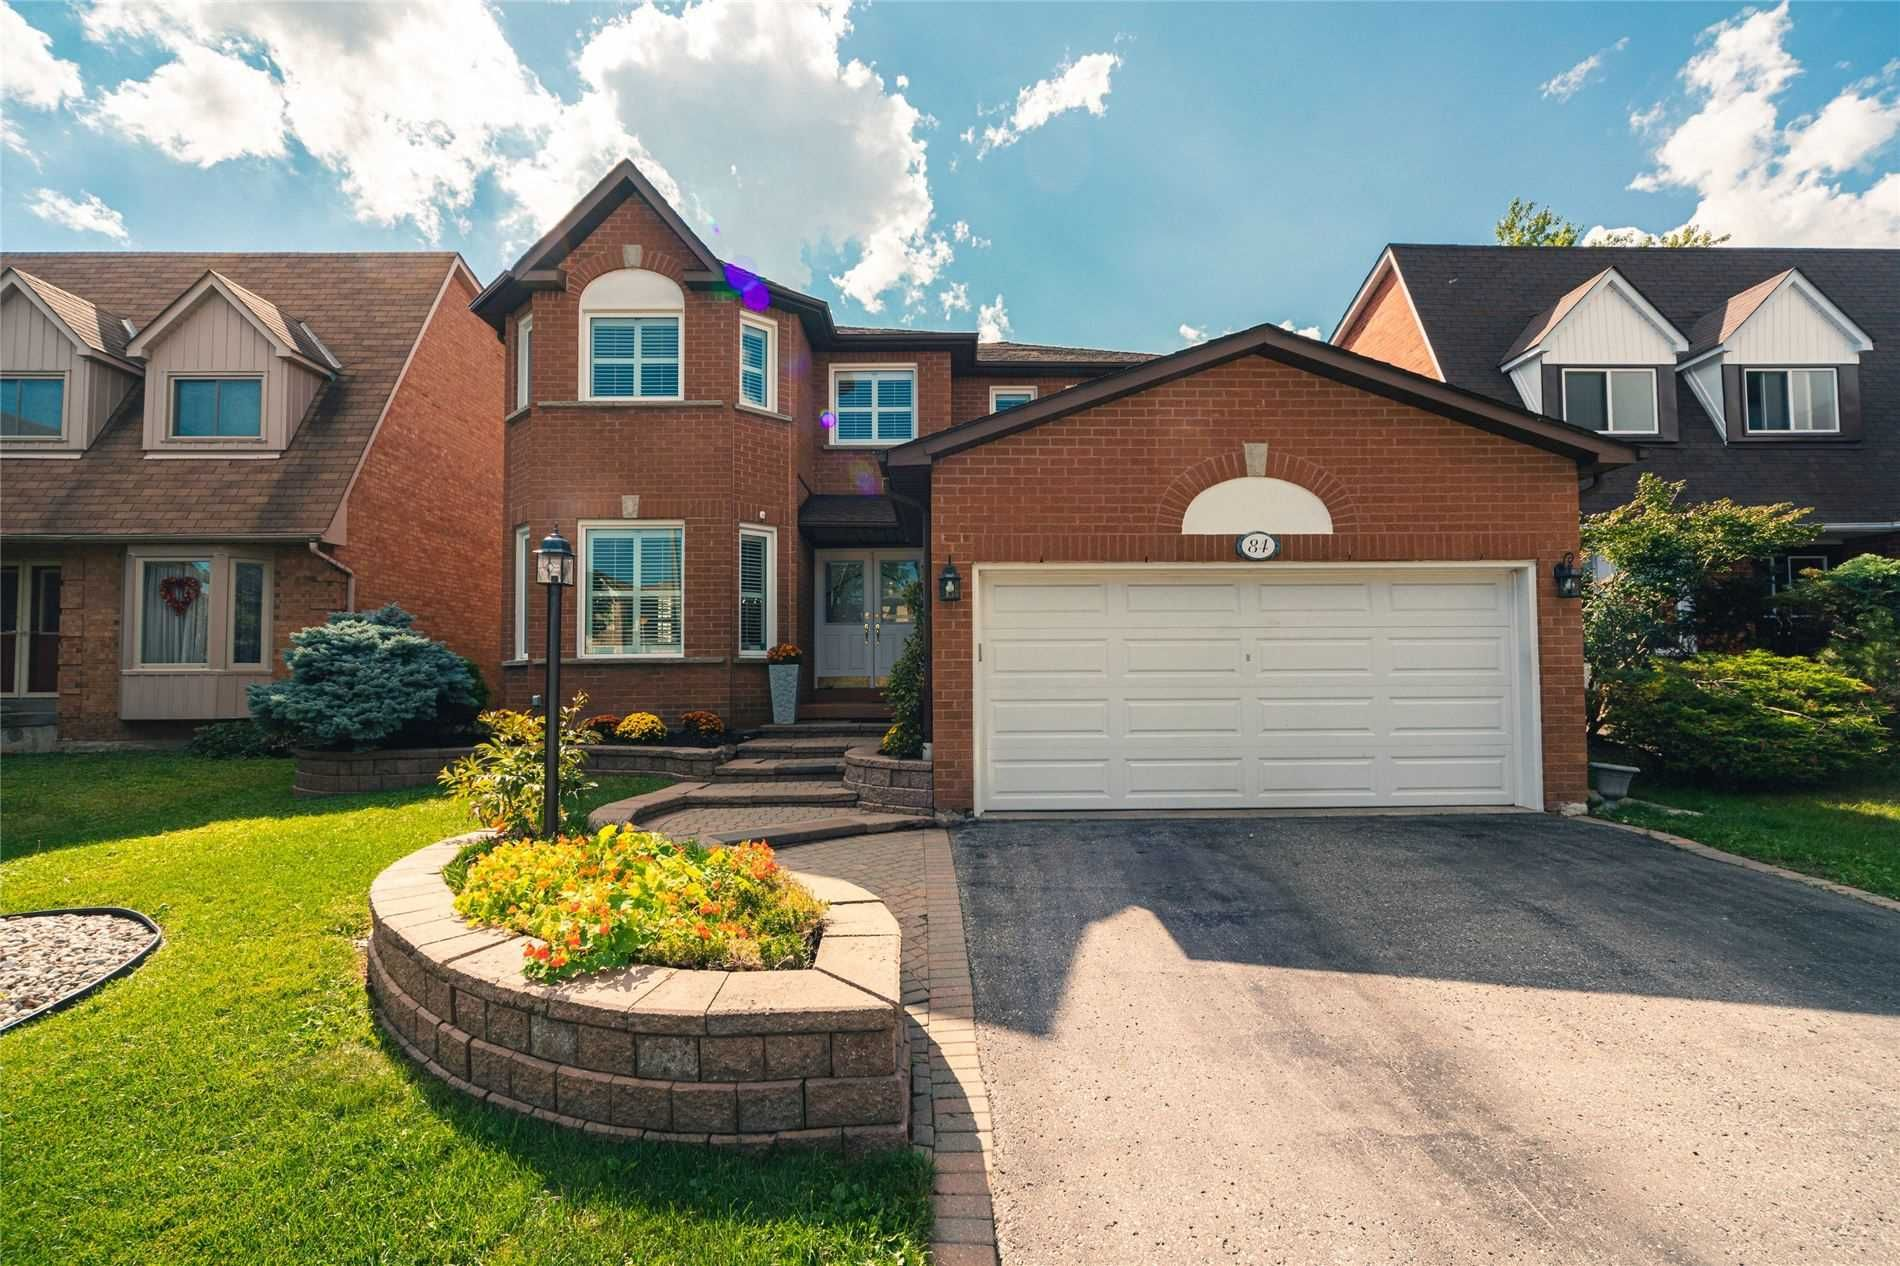 Main Photo: 84 Forest Heights Street in Whitby: Pringle Creek House (2-Storey) for sale : MLS®# E5364099